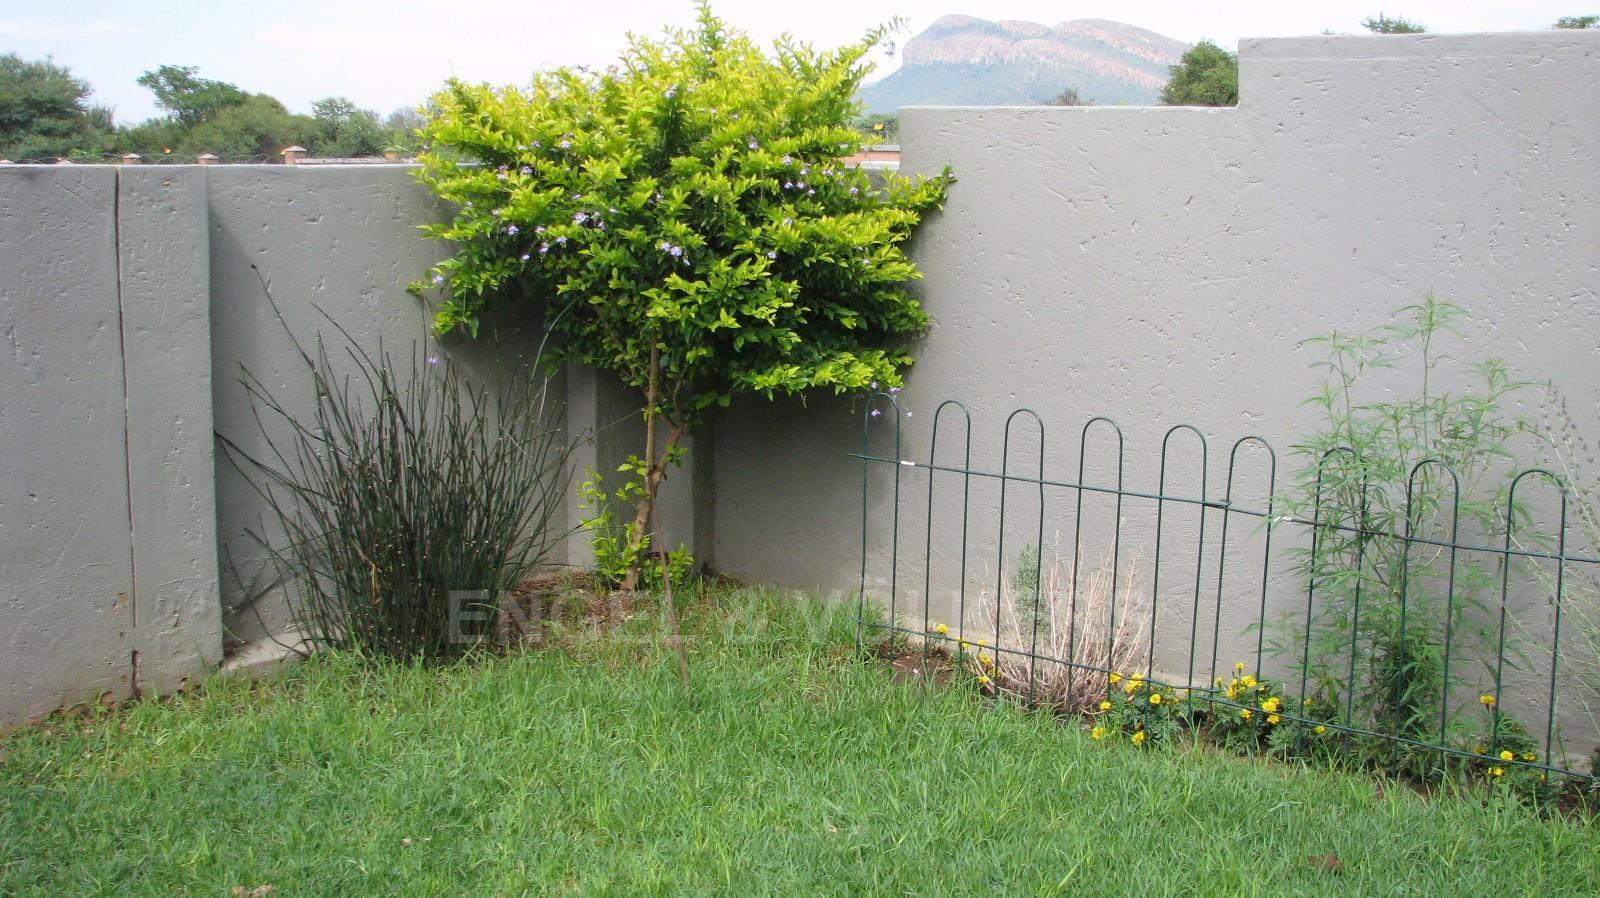 House in Melodie - Pet friendly garden area